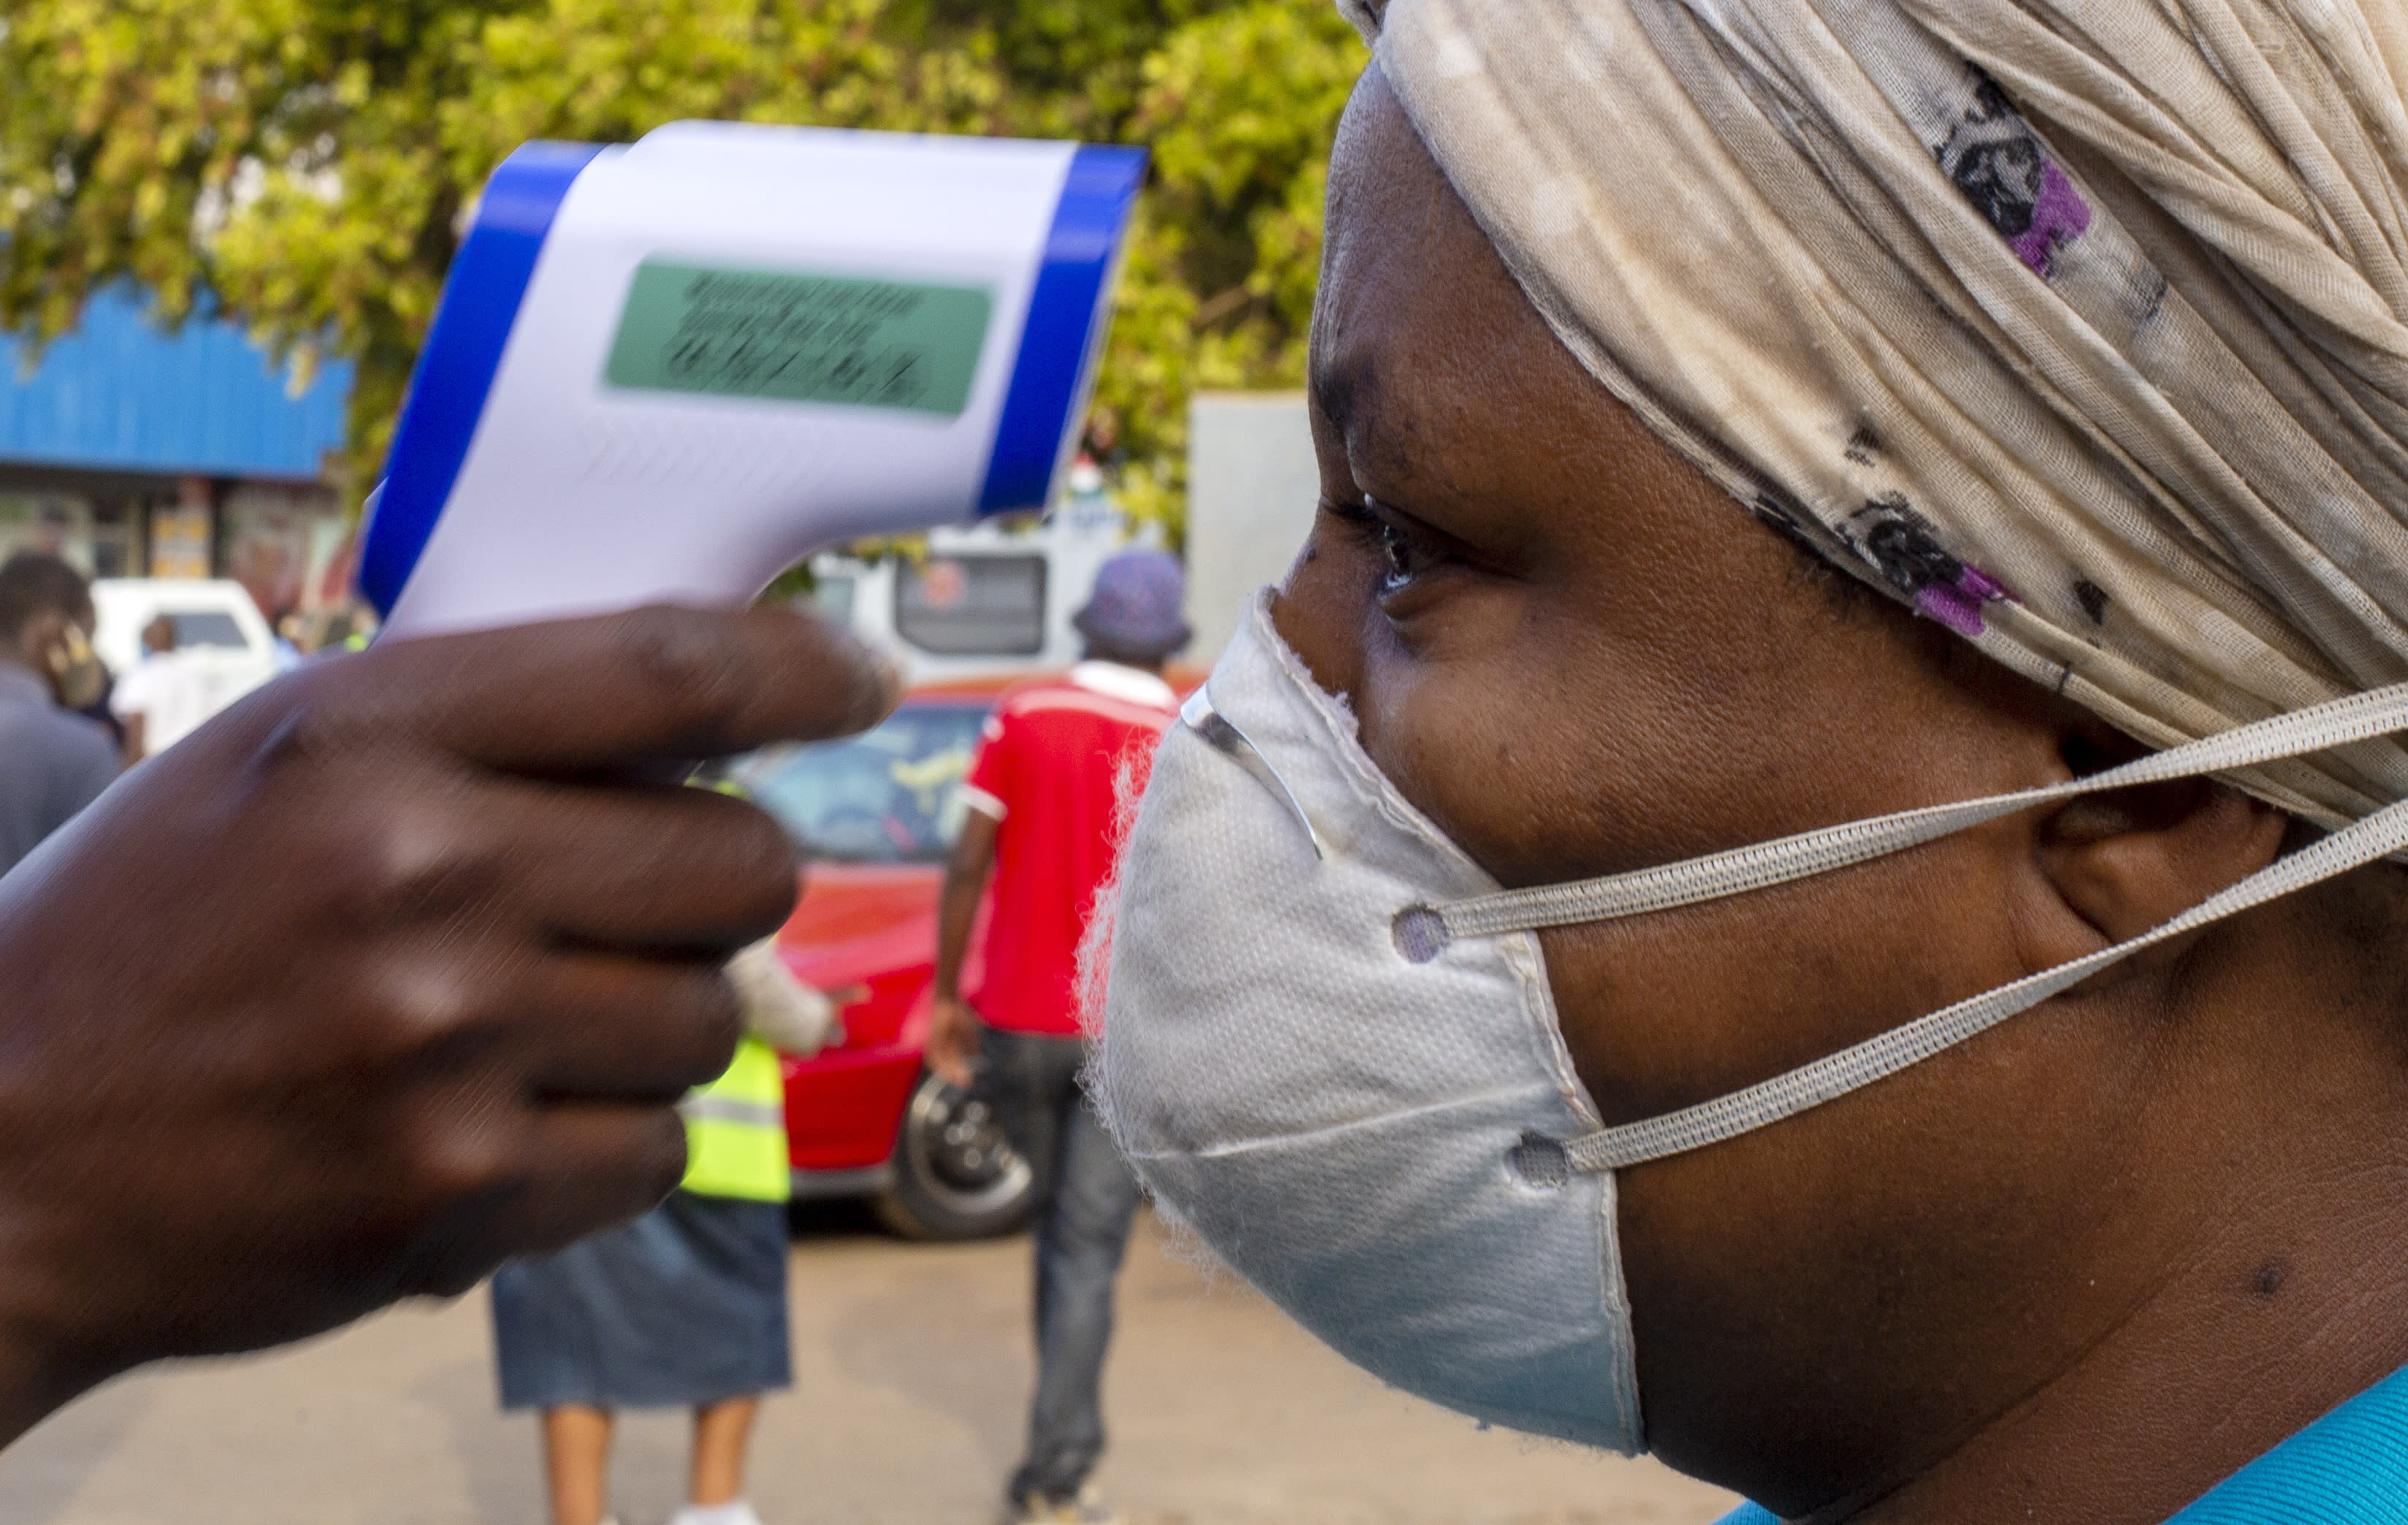 A woman wearing face masks to protect against coronavirus, has her temperature checked by a security personnel before entering a grocery shop at Tembisa township in Johannesburg, South Africa, Tuesday, May 19, 2020. (AP Photo/Themba Hadebe)